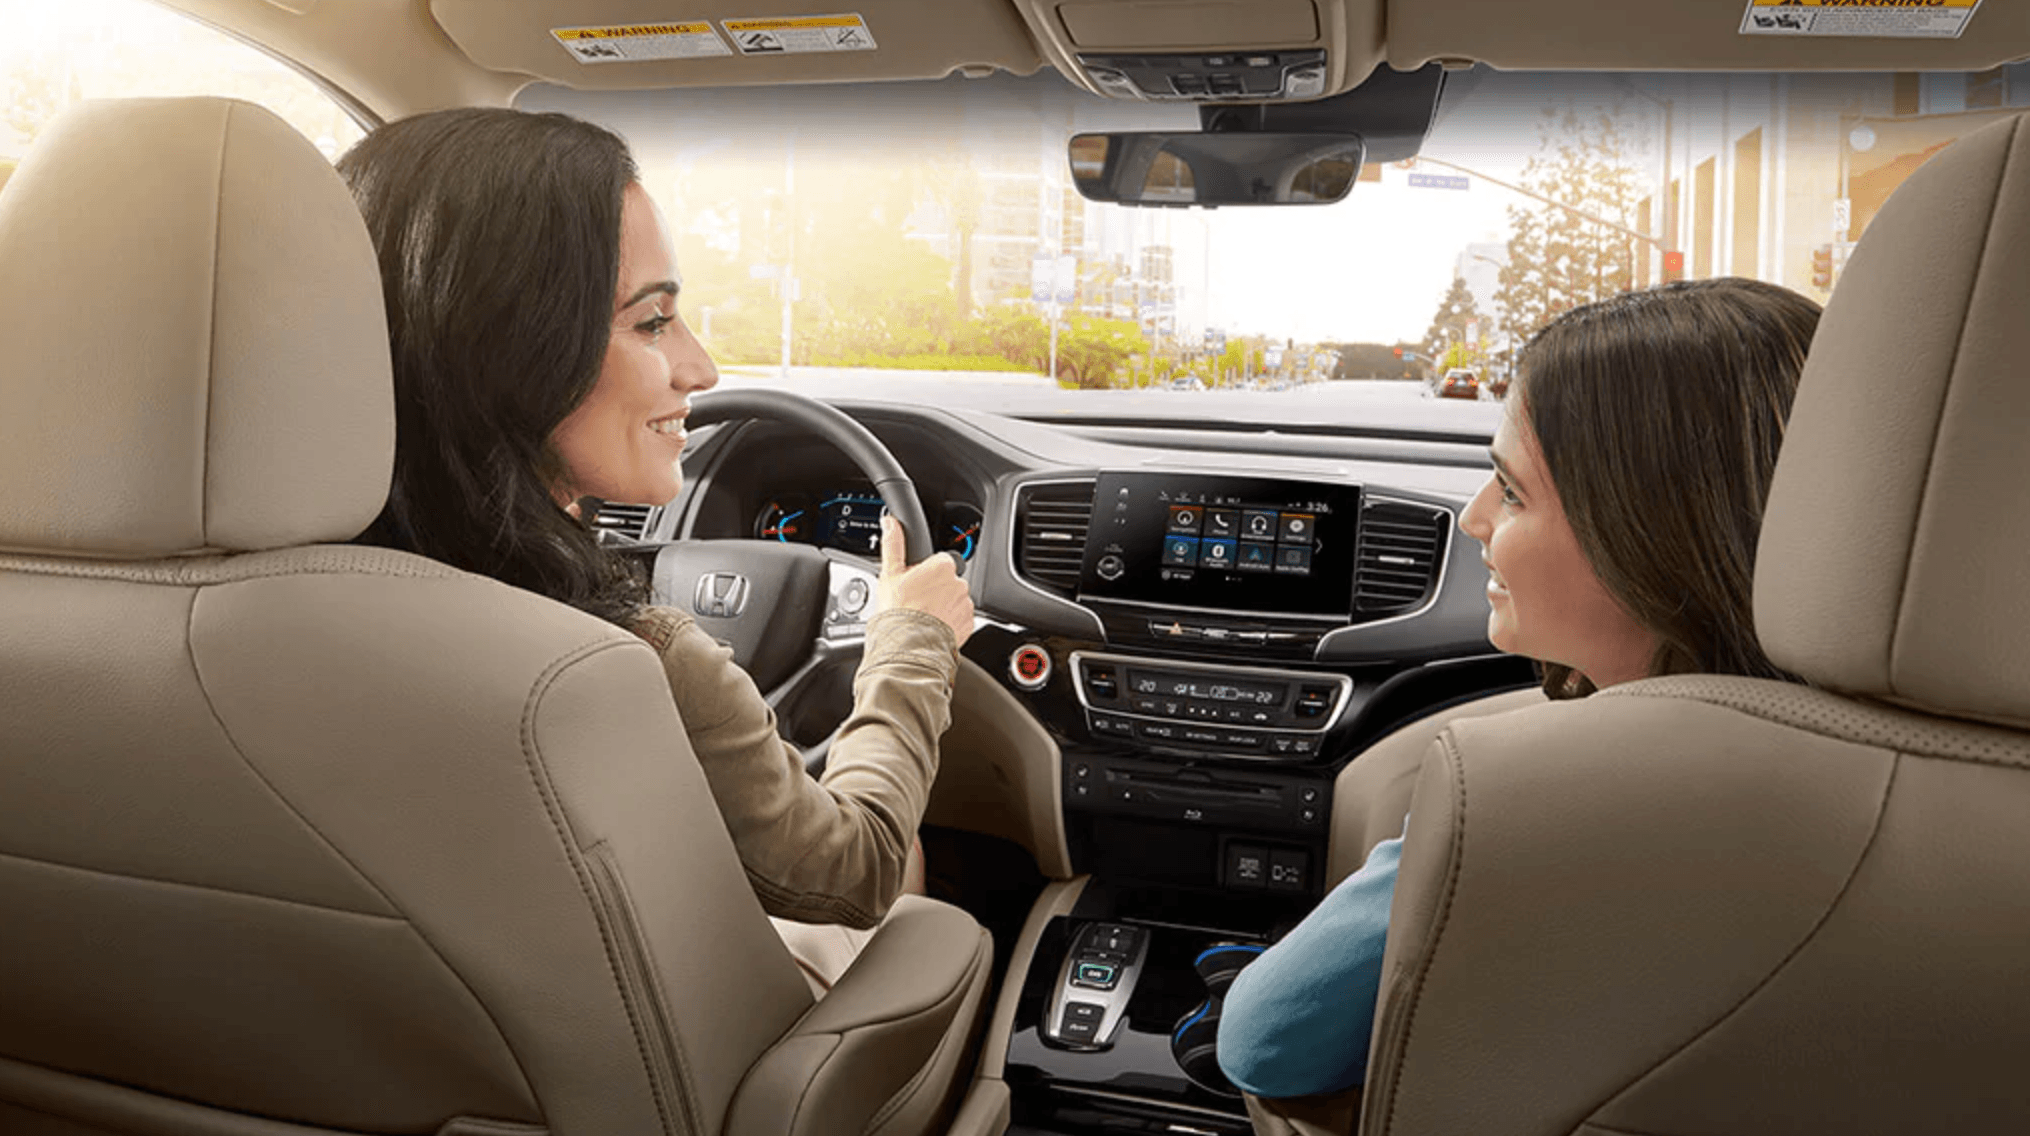 2020 Honda Pilot Interior at Richmond Hill Honda in Toronto and the GTA